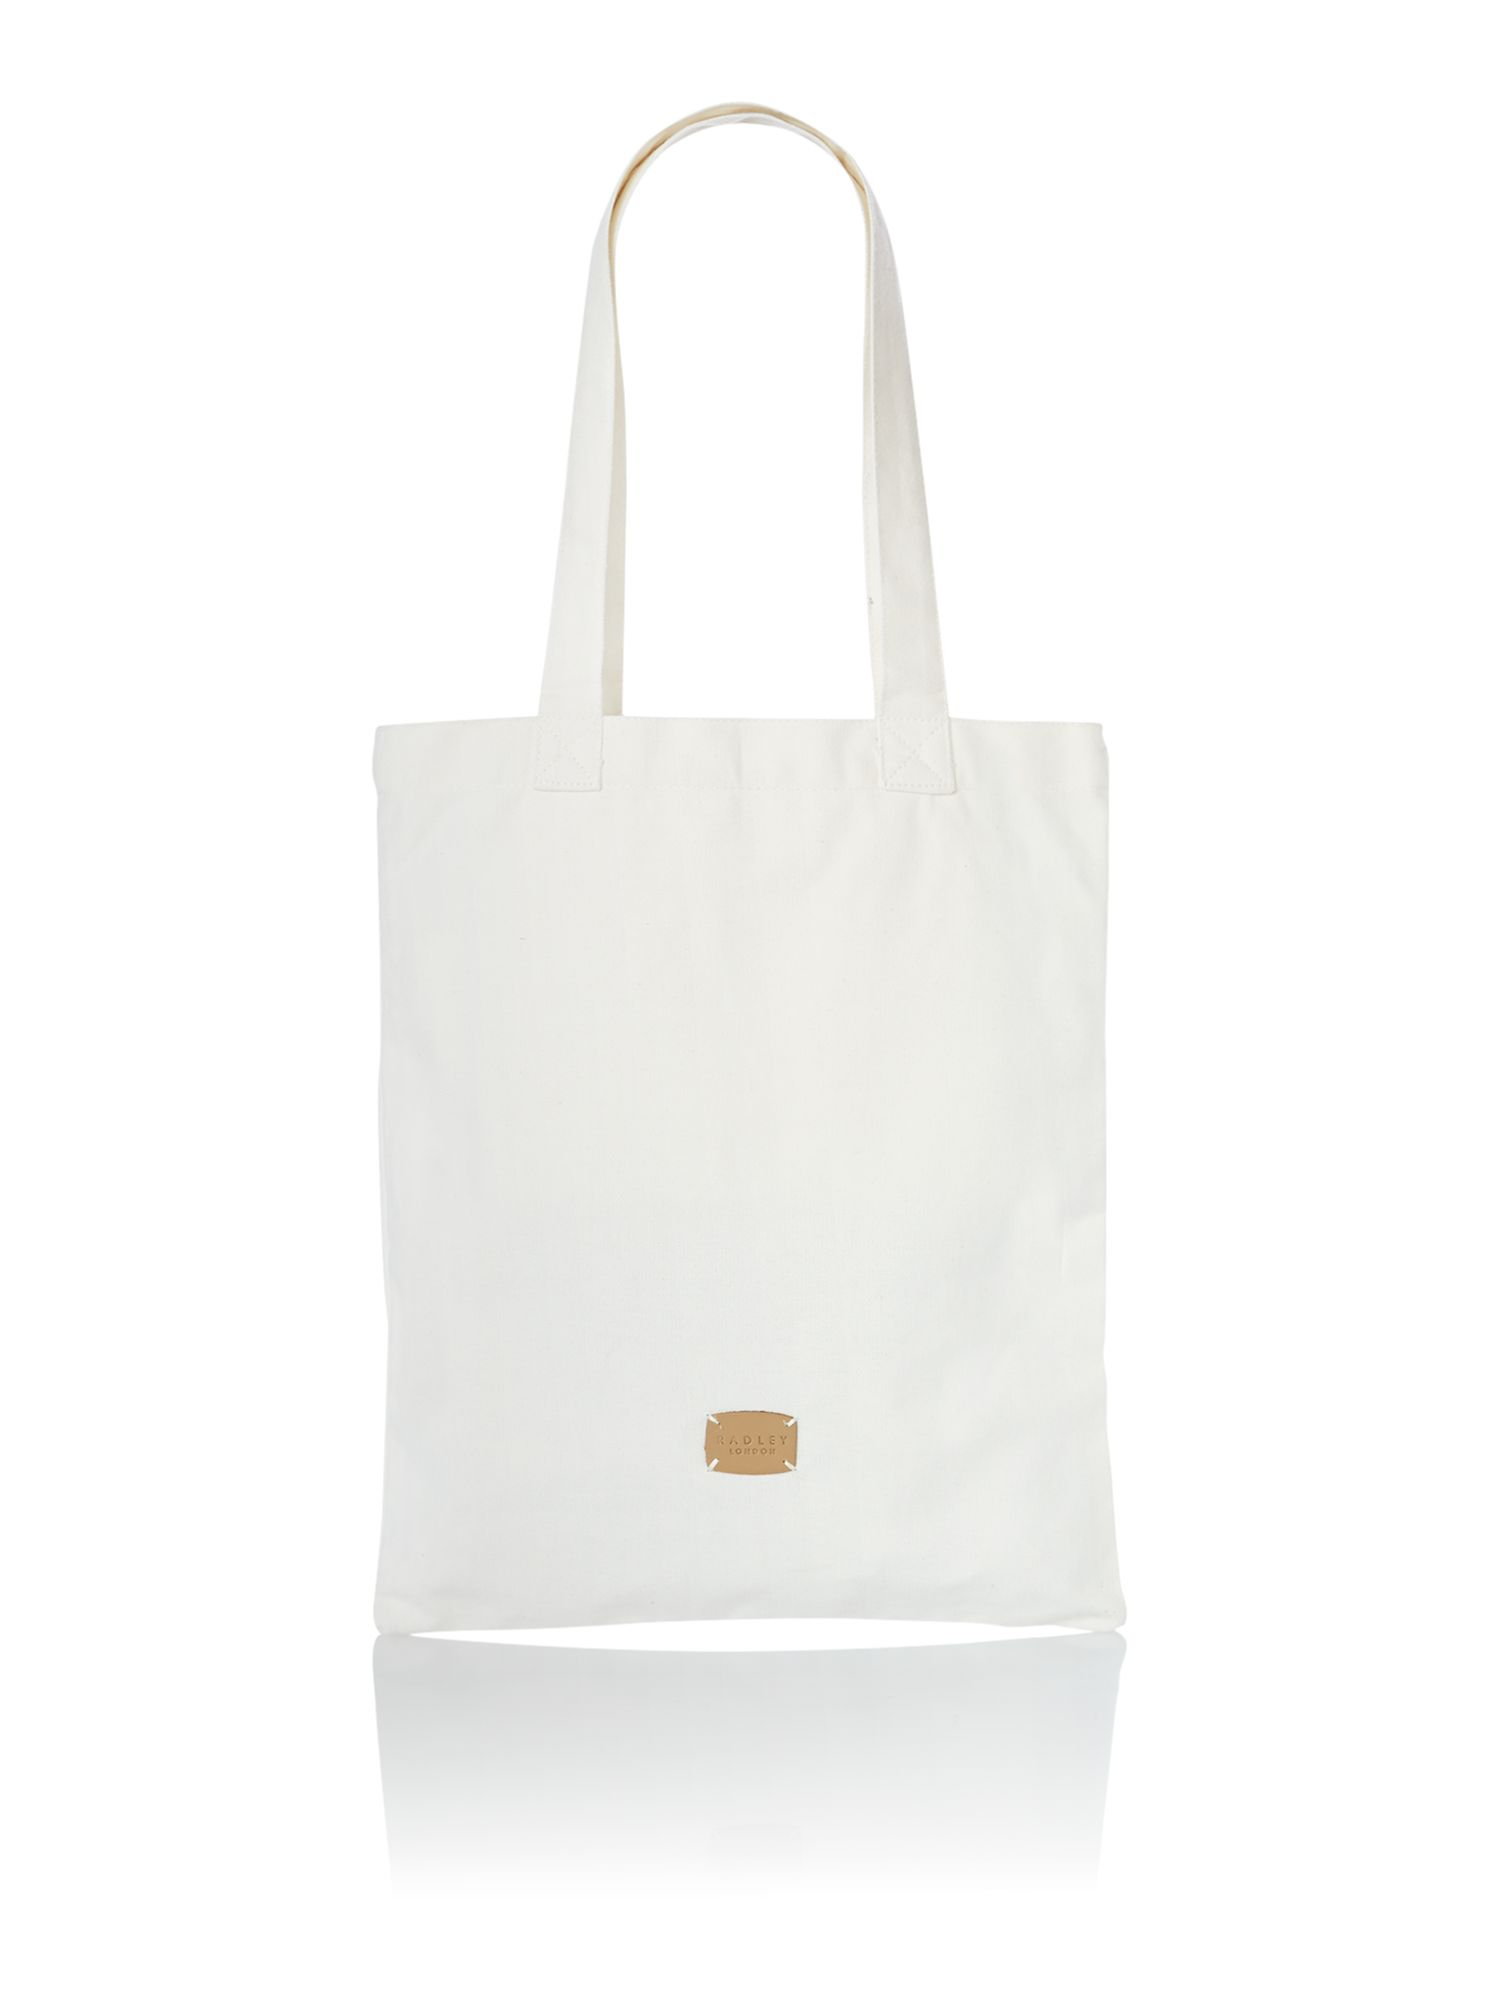 Pulse of london orange tote bag